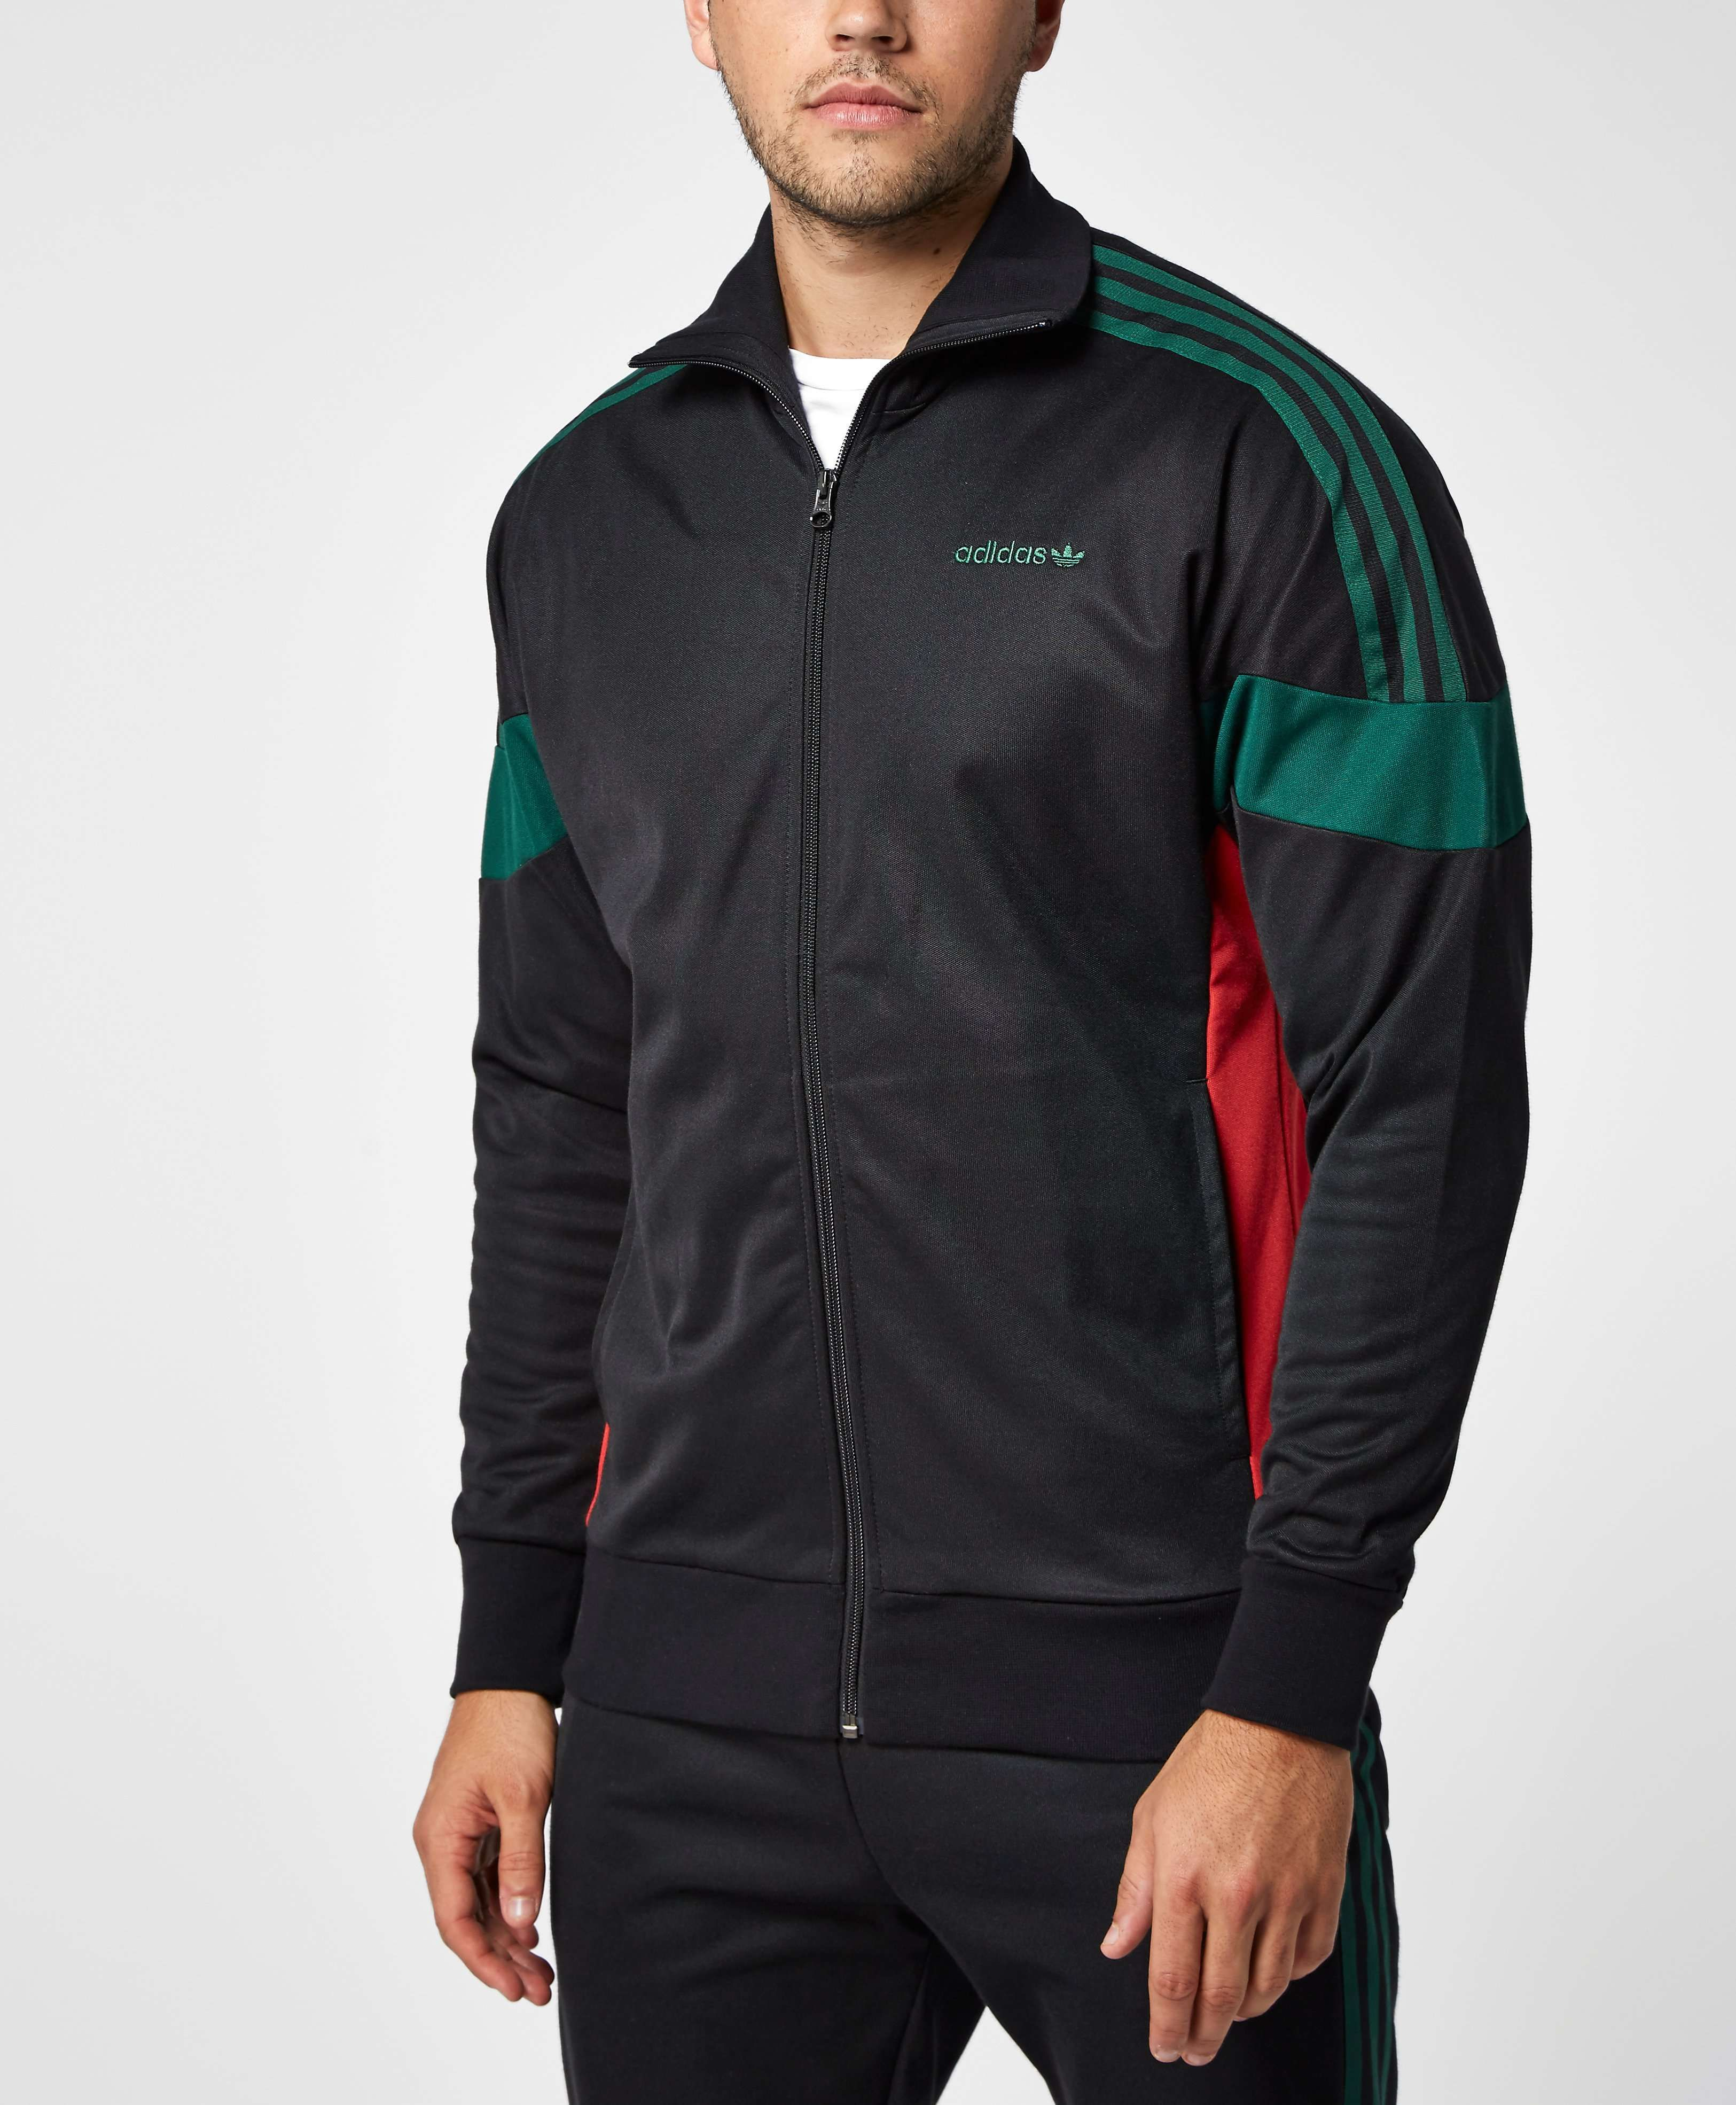 54ec1788a adidas Originals Challenger Track Top - The Brand Authority, scotts  Menswear, brings you the latest clothing, footwear and accessories from top  menswear ...